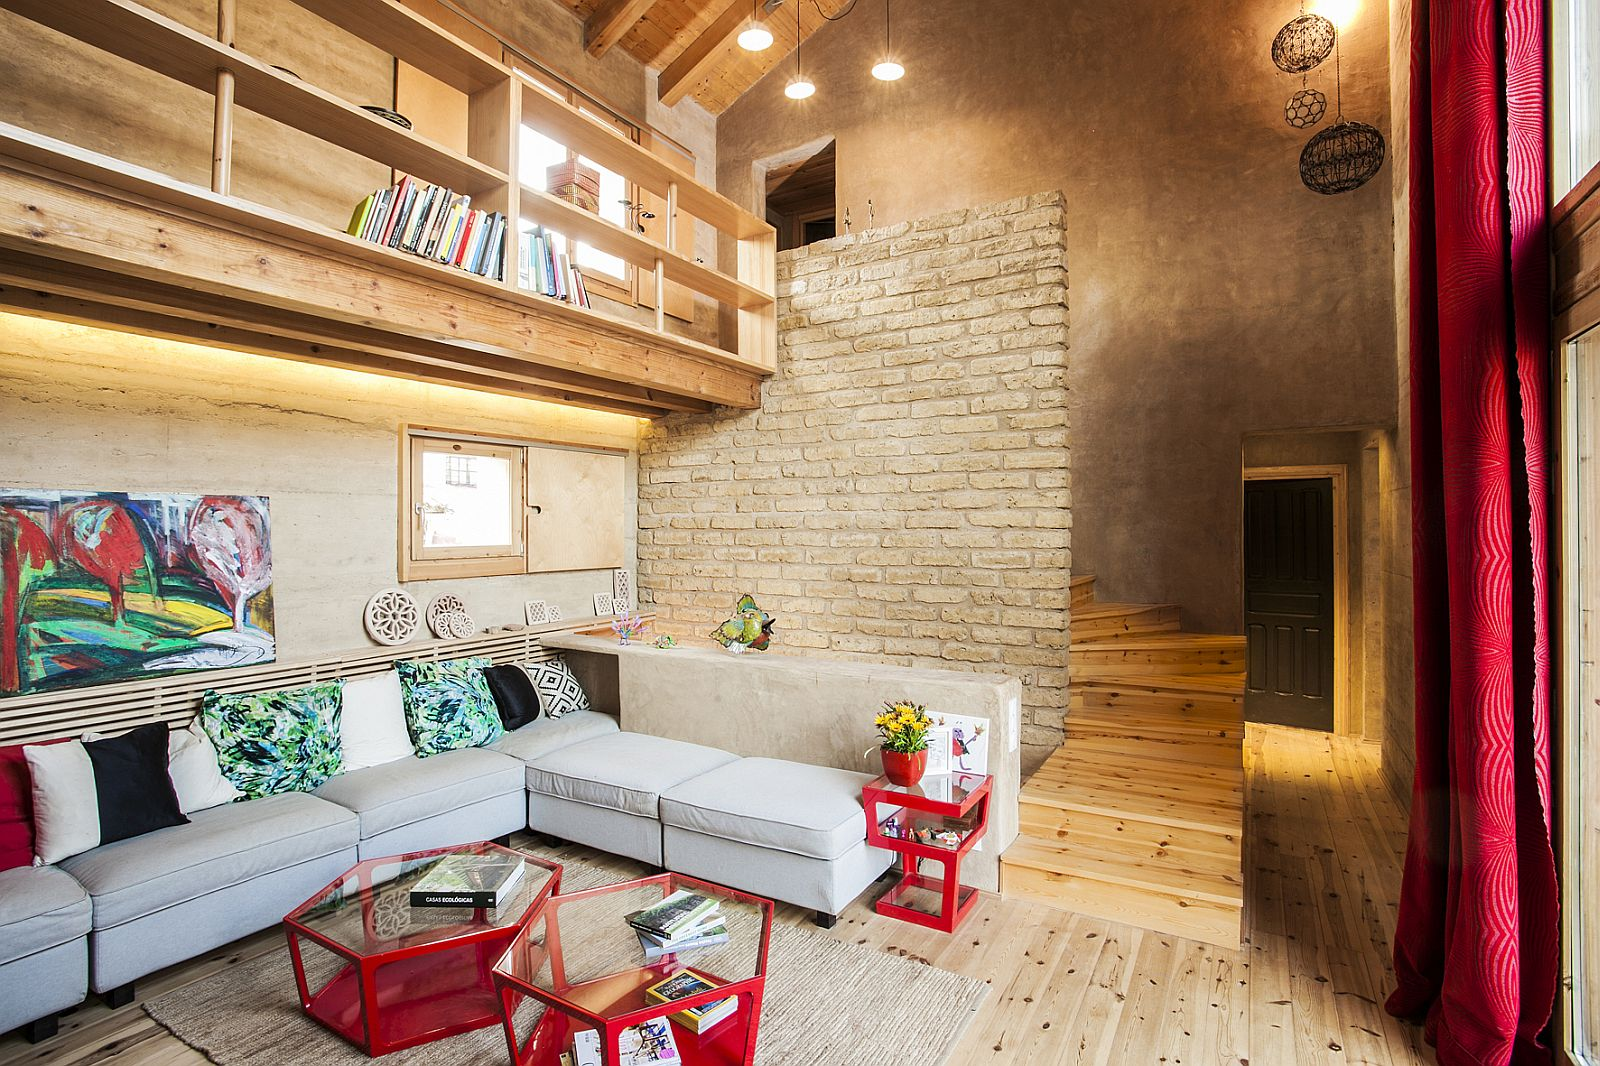 Coffee tables in red and lighting bring brightness to the living area